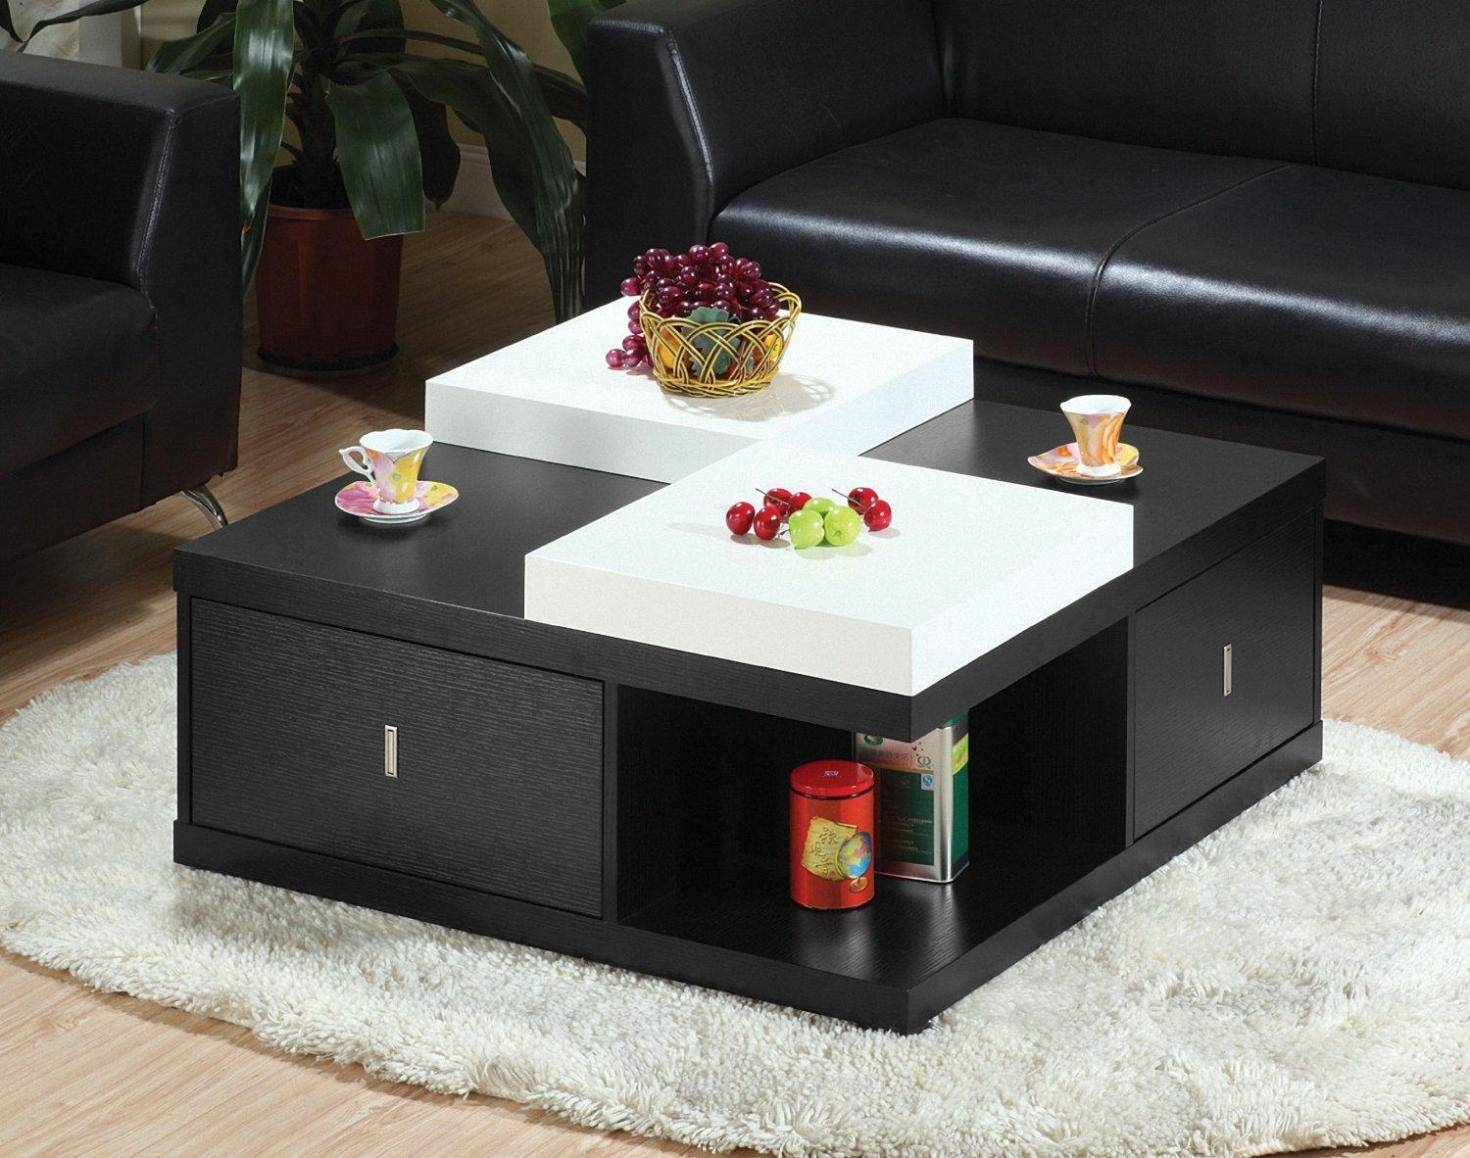 Square Coffee Table With Storage: More Than One Function In One throughout Large Square Coffee Table With Storage (Image 14 of 15)